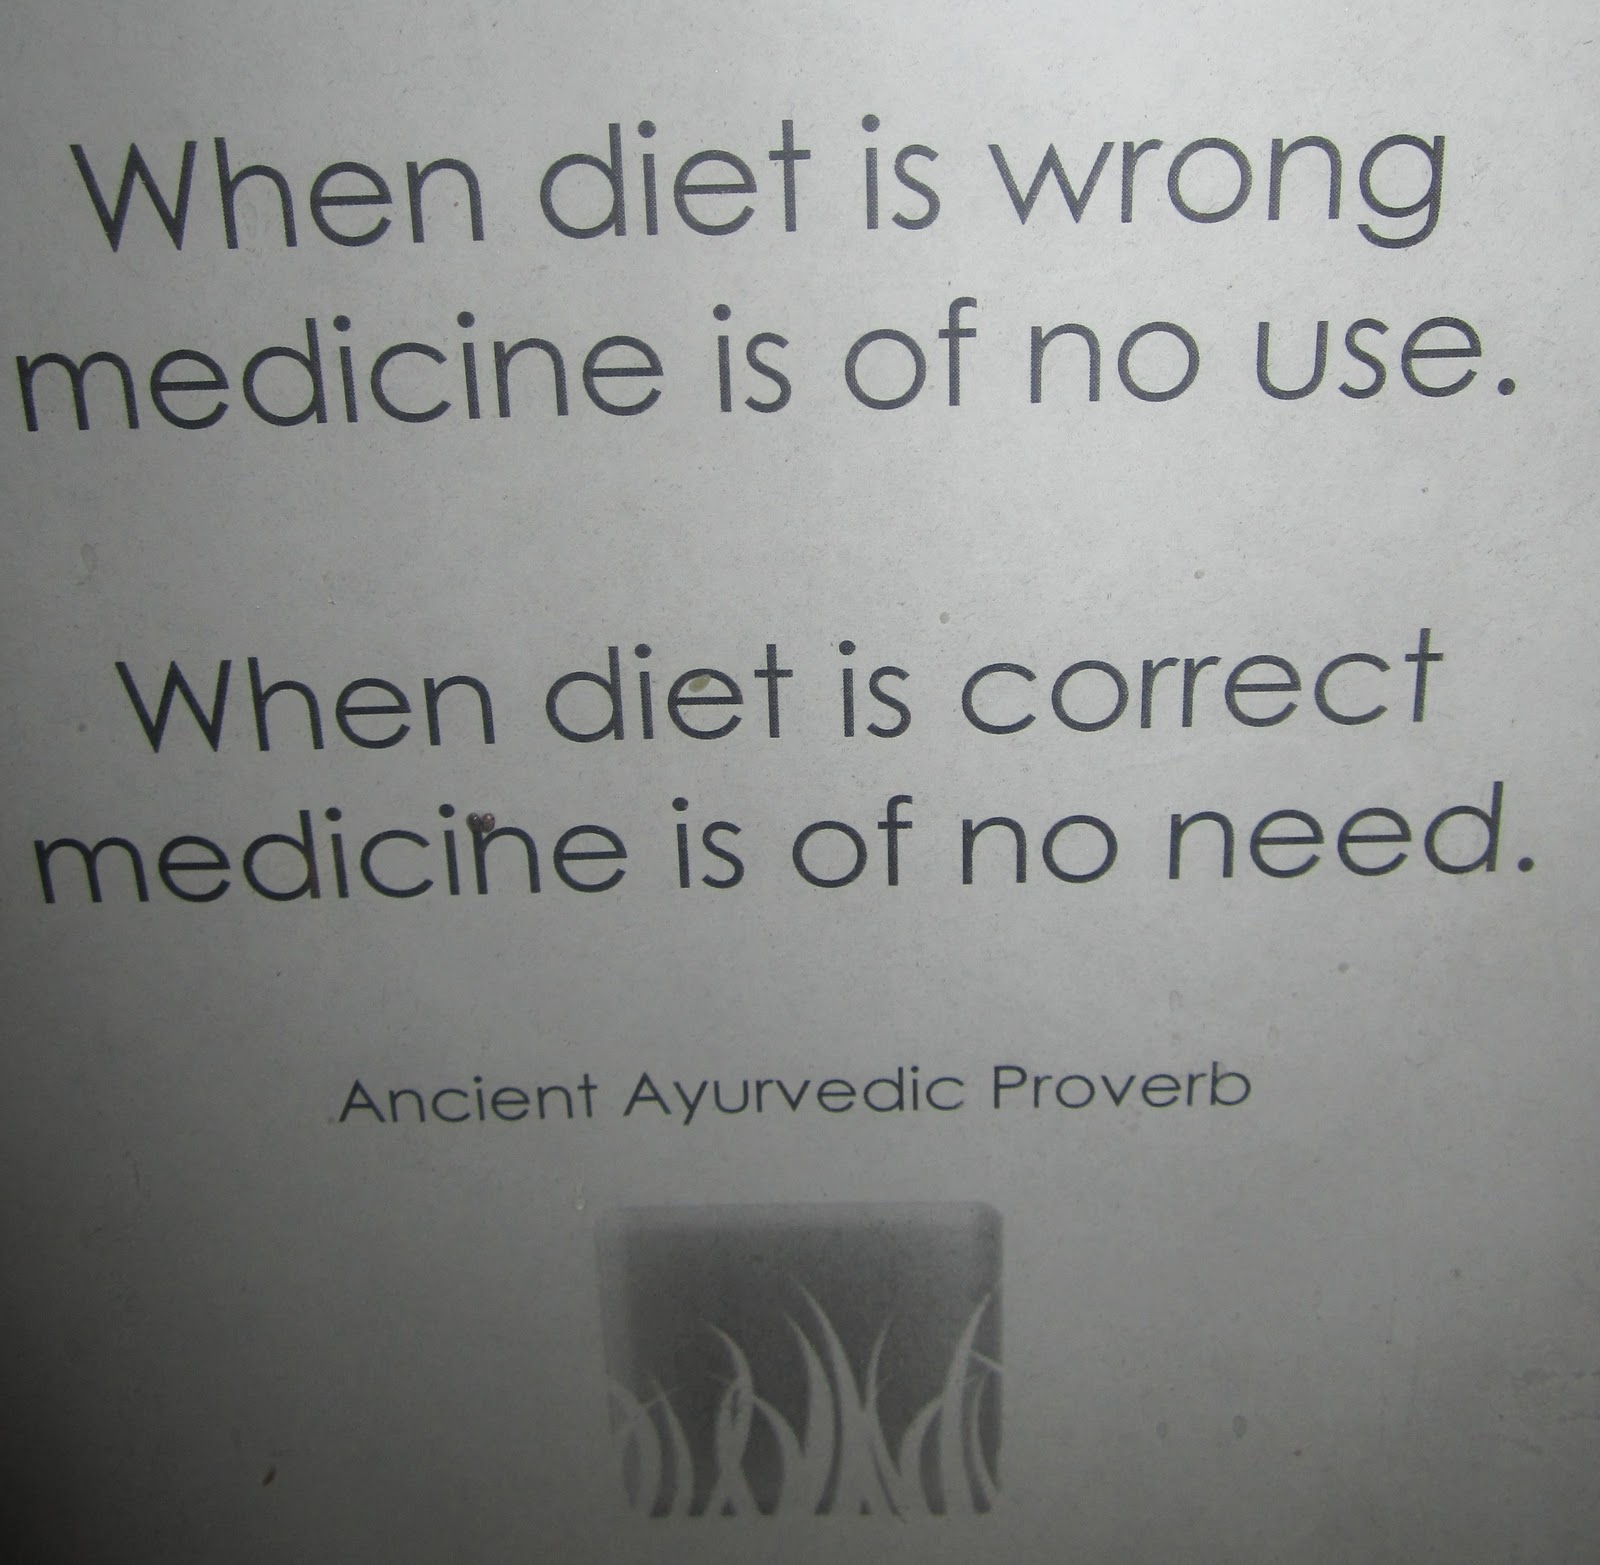 Hippocrates Quotes: Quotes By Hippocrates On Foods. QuotesGram